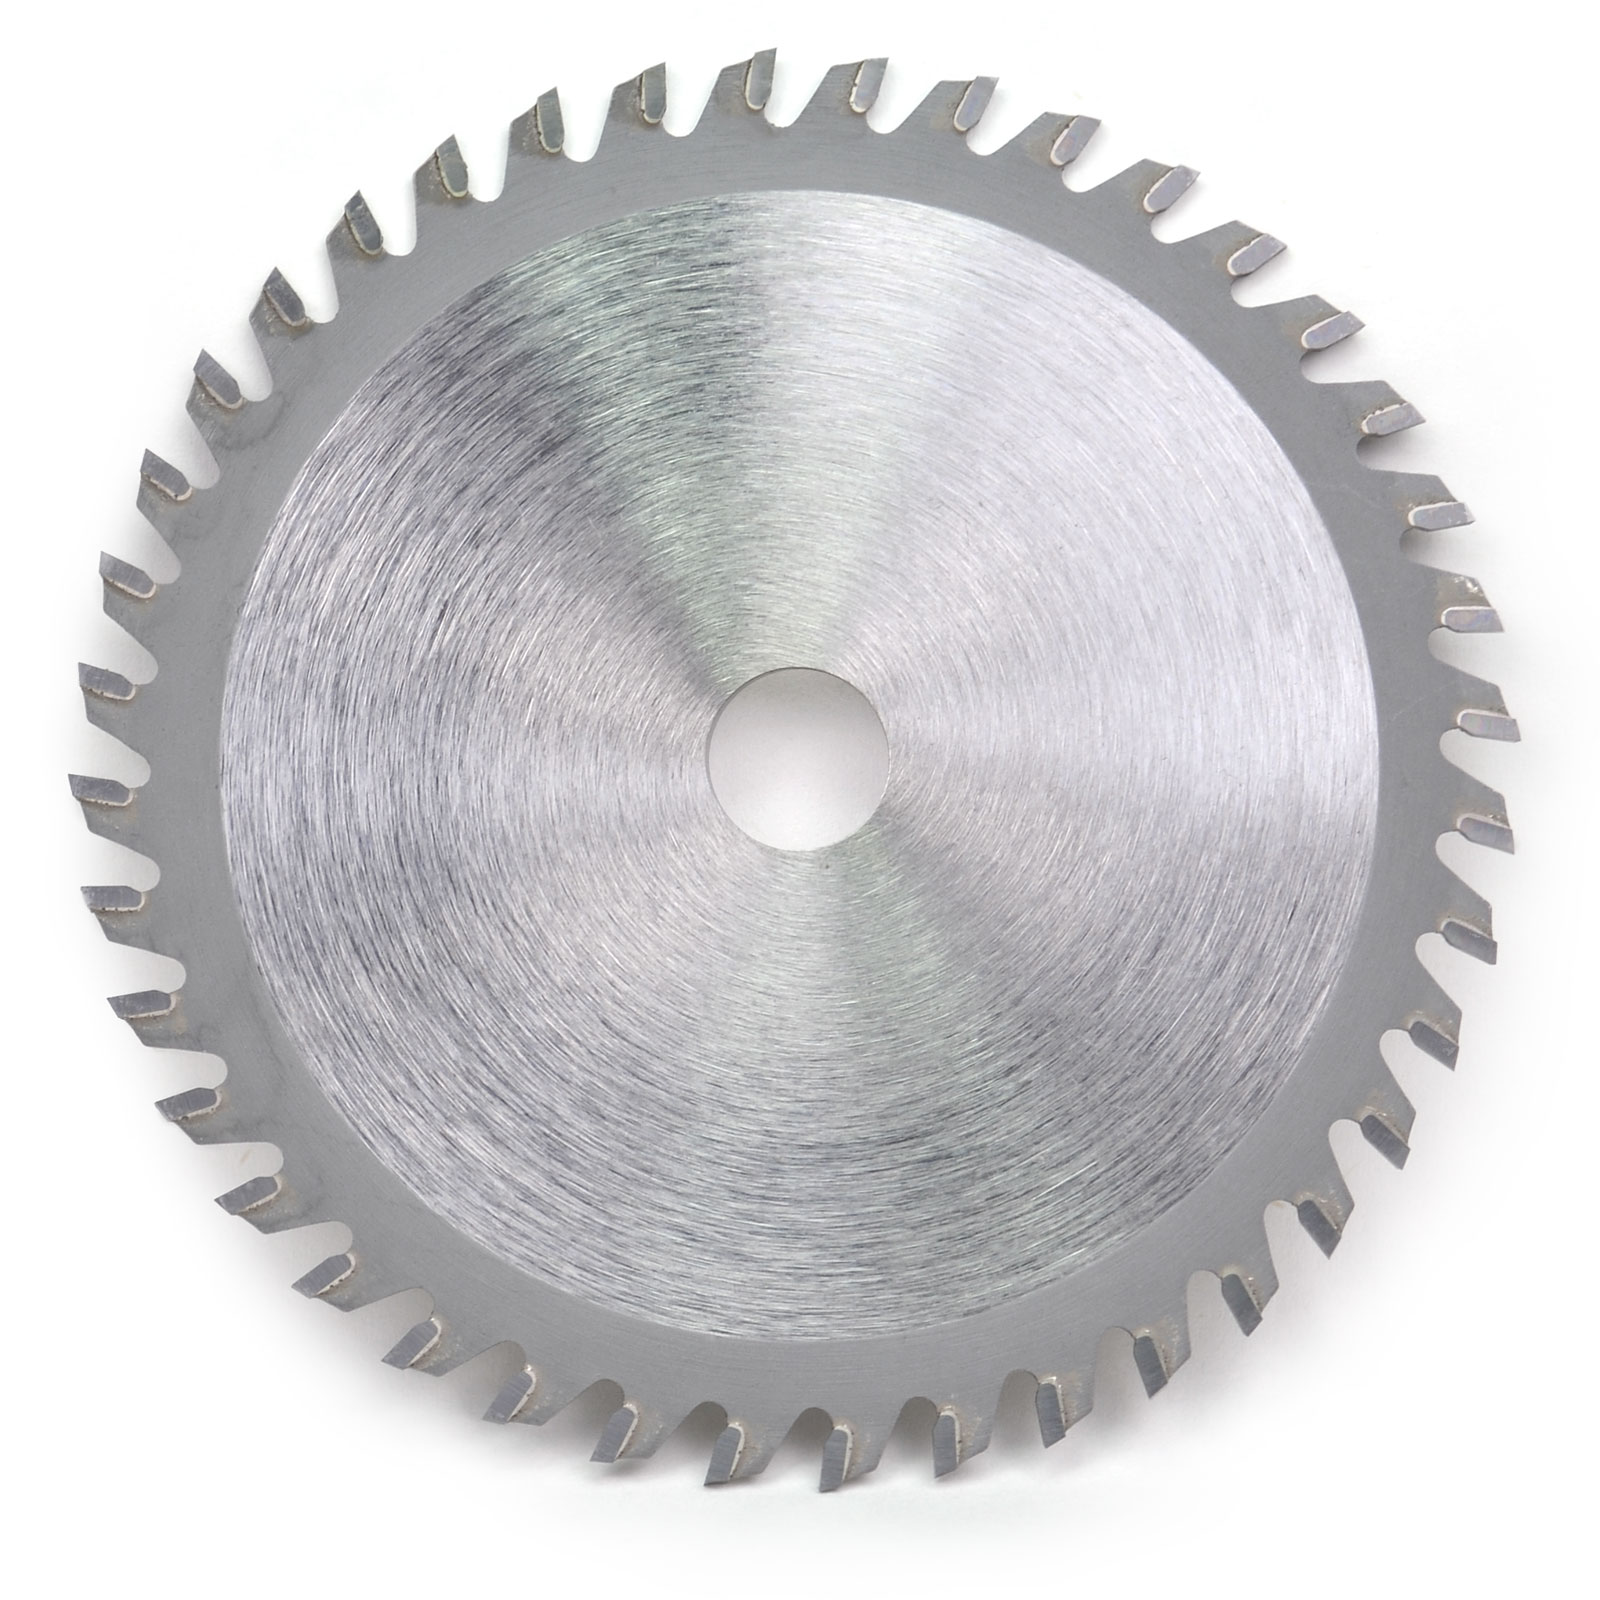 40 Tooth Saw Blade